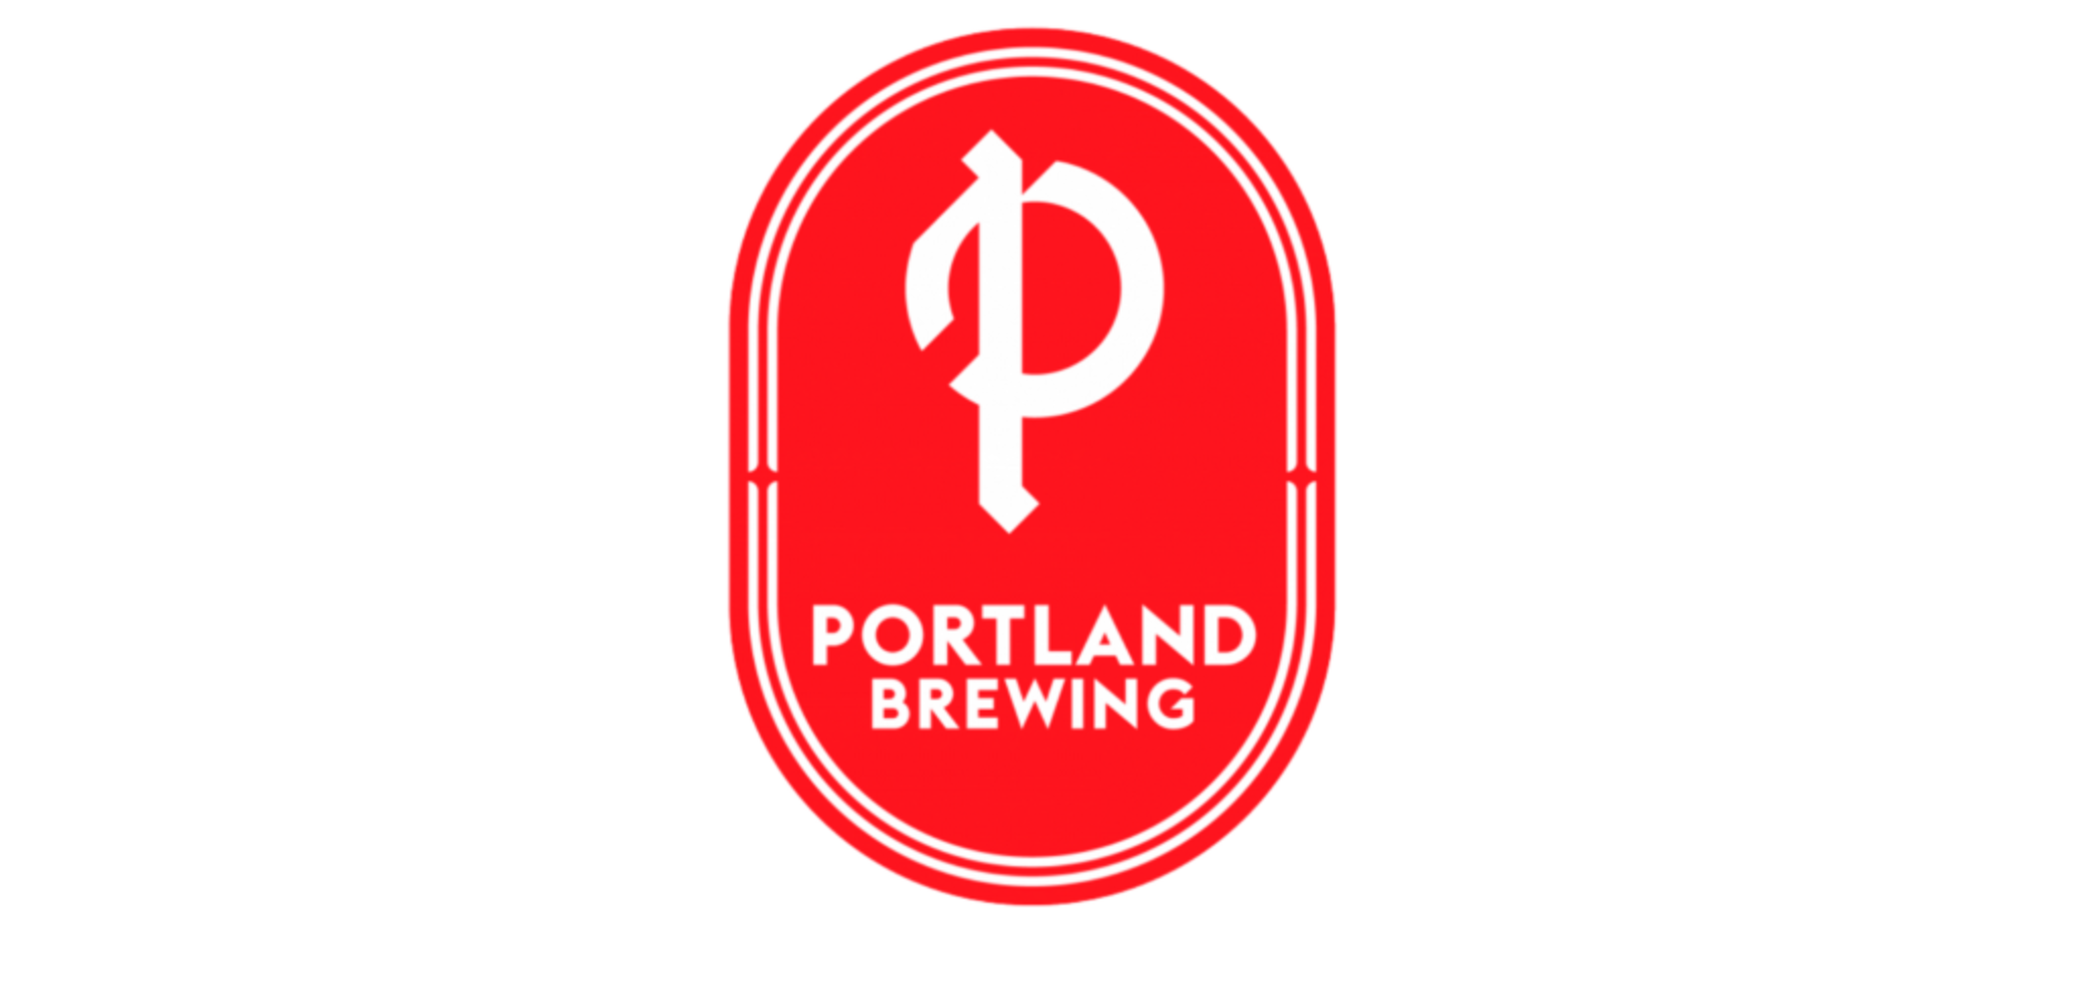 Portland Brewing Co - High Volume Microbrewery: 2015 Alfa Laval Clarifier, 2019 Alfa Laval Decanter, (50+) FVs and Brites - 40 to 580 BBL, More